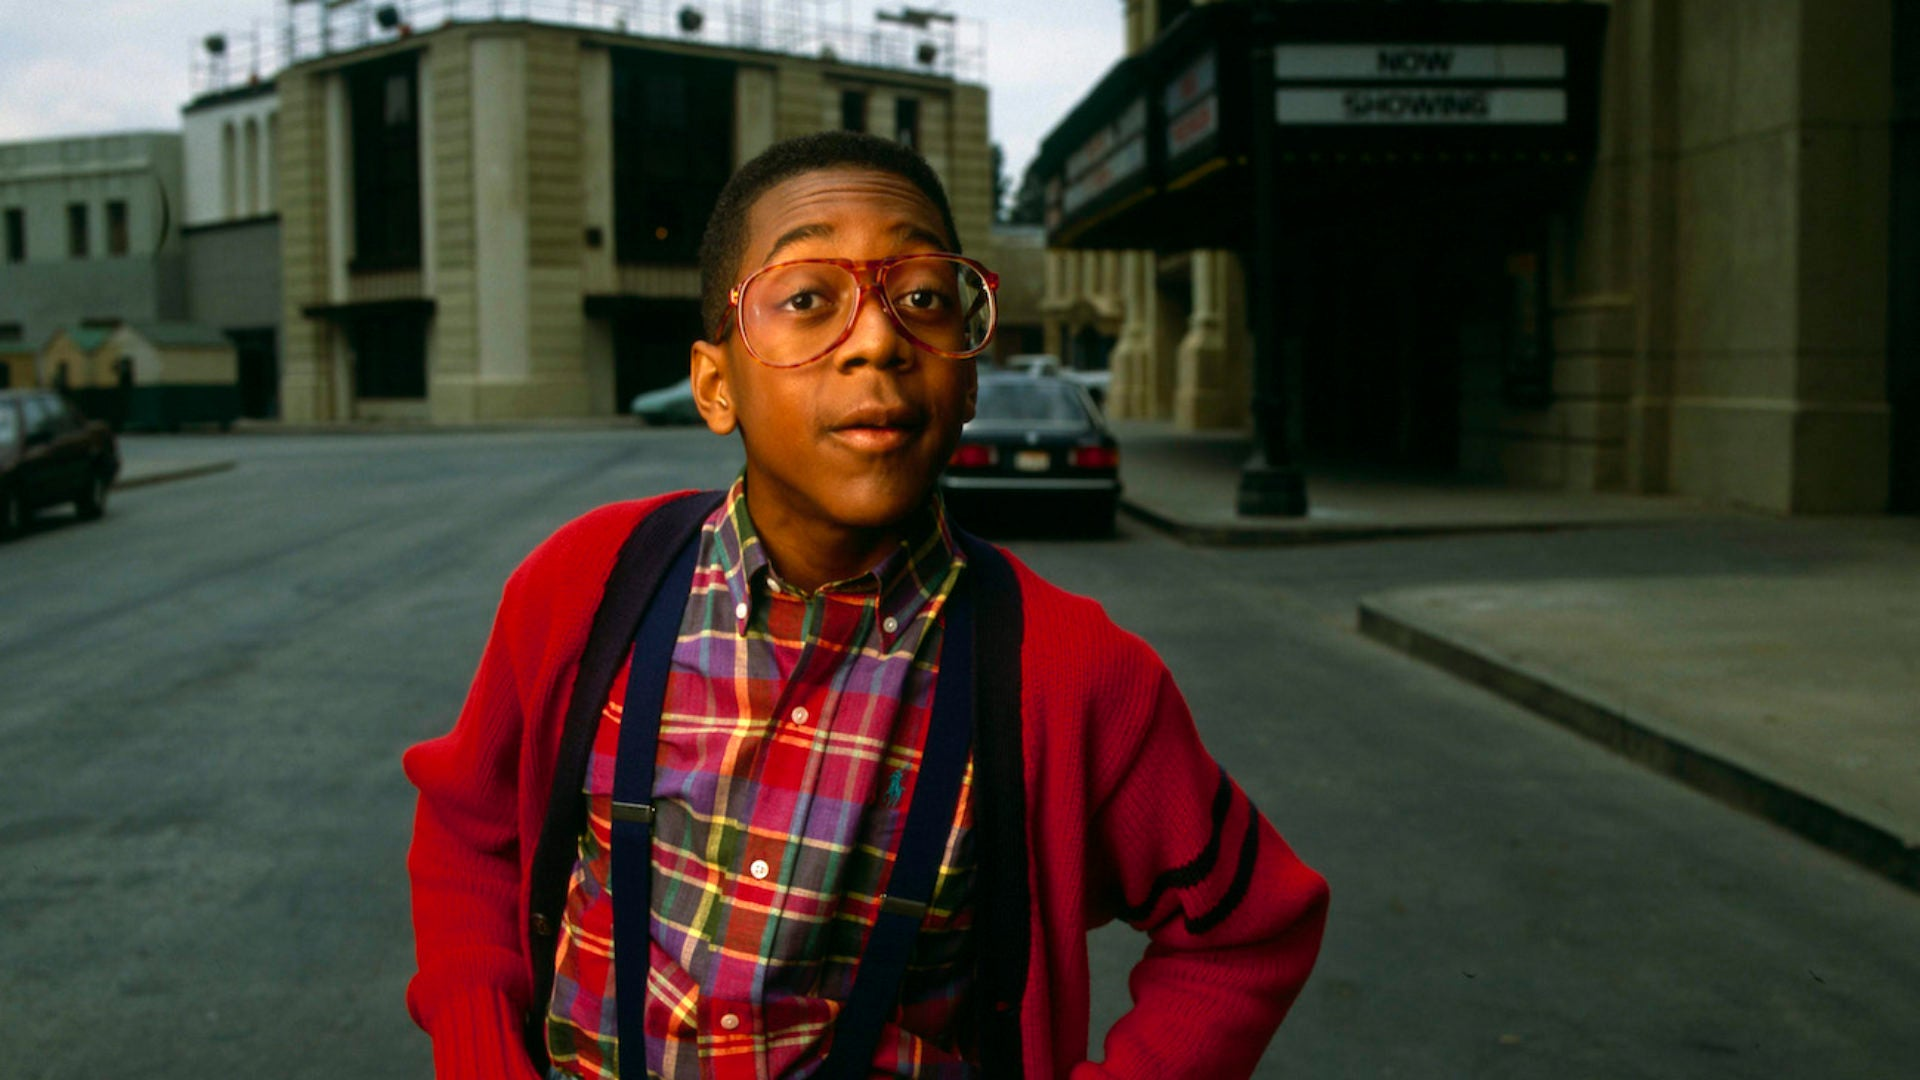 Jaleel White Revives Iconic Steve Urkel Character For Scooby Doo 1920x1080